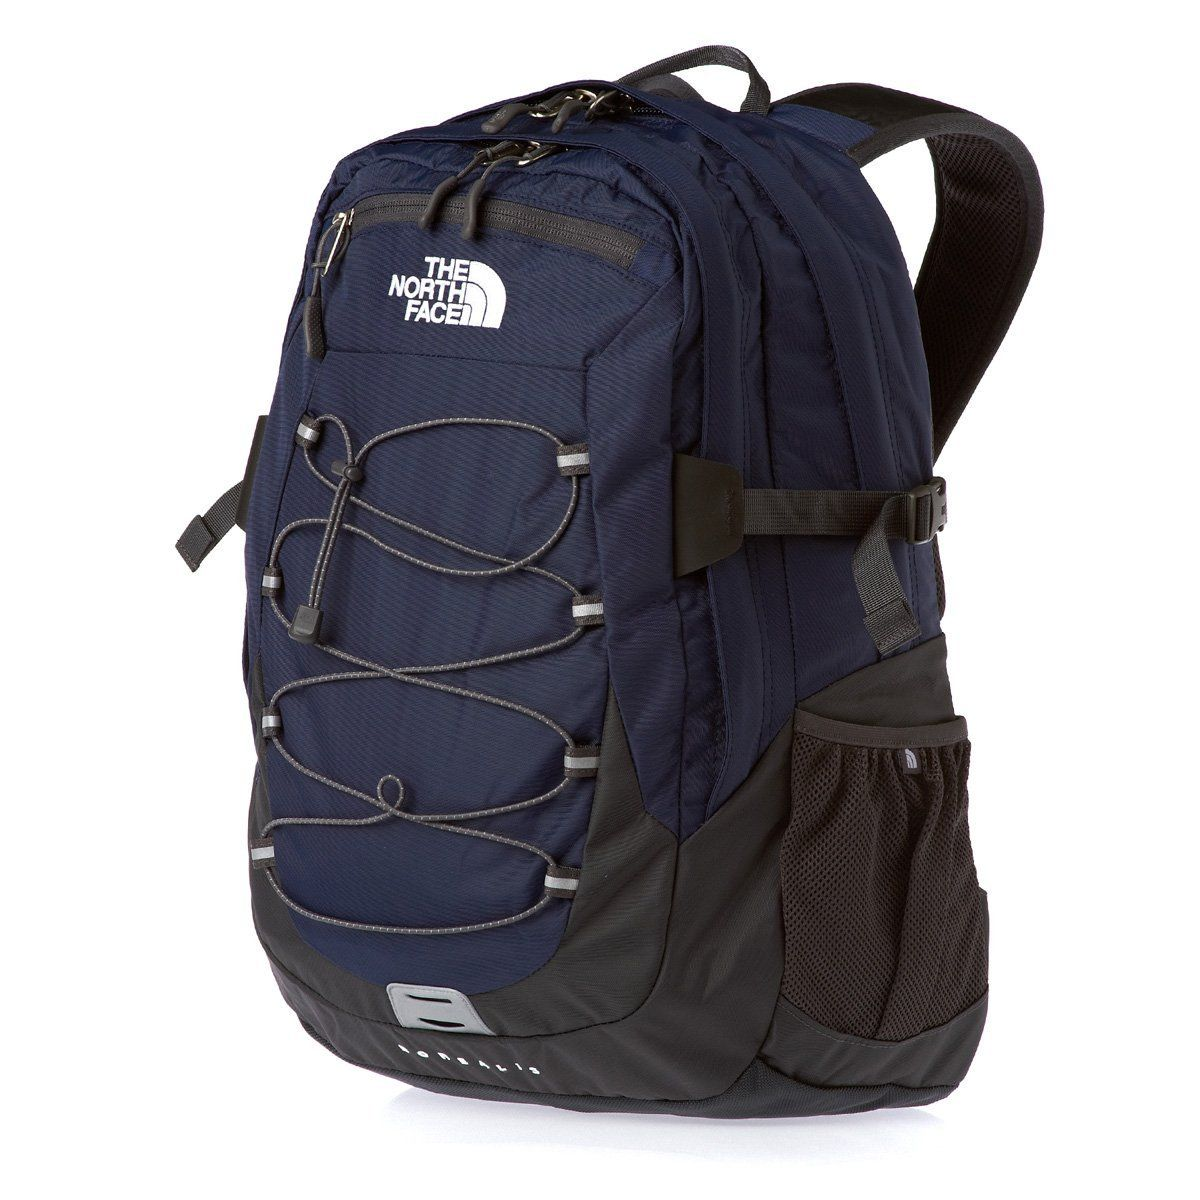 Shop for the best school or travel backpack on the market in the ...